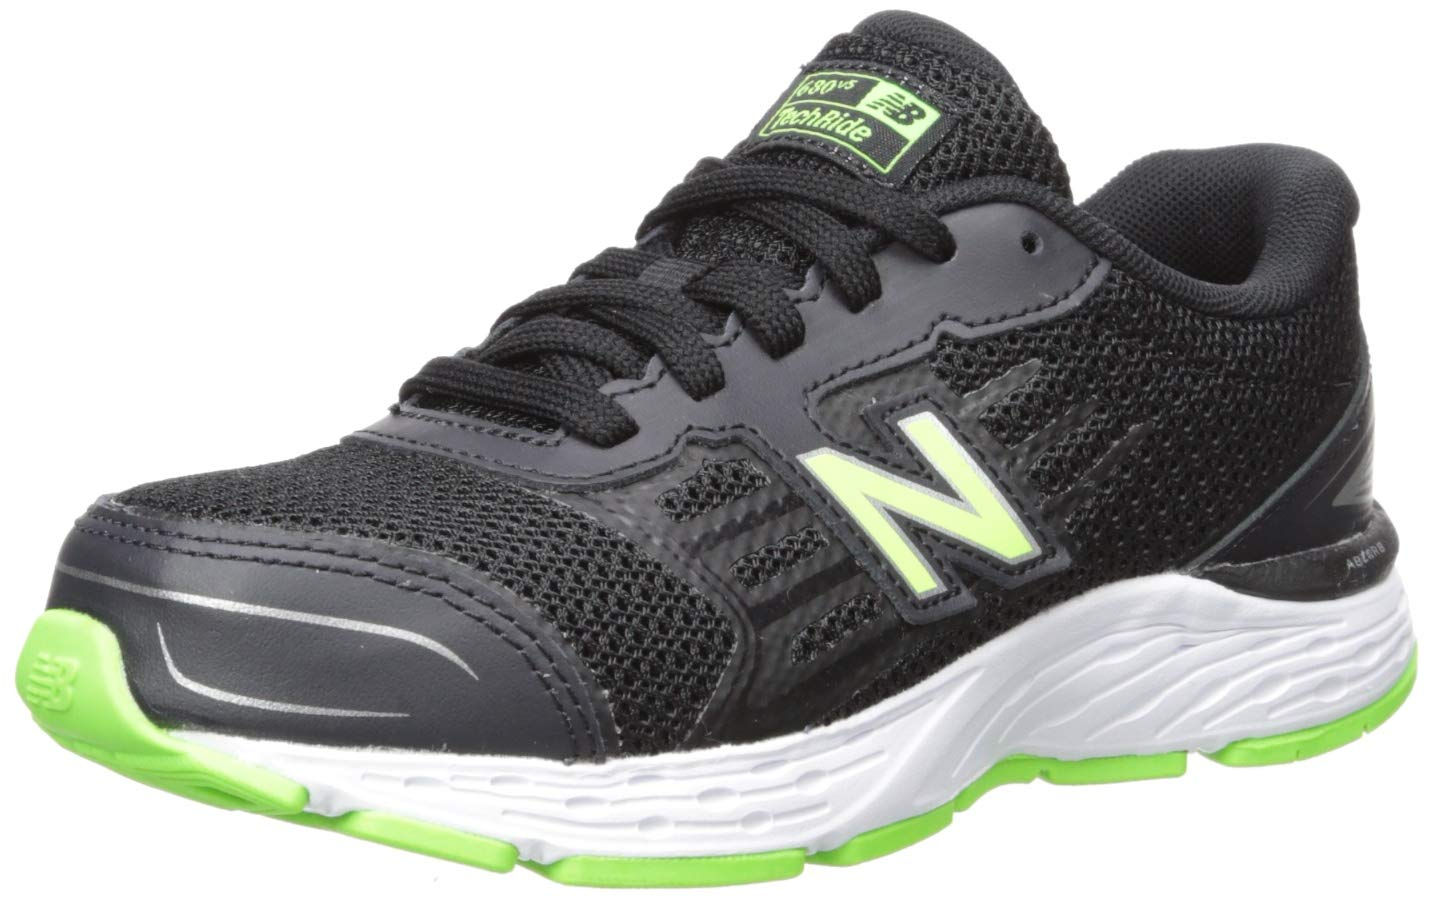 New Balance Boys' 680v5 Running Shoe, Black/RBG Green, 2 M US Little Kid